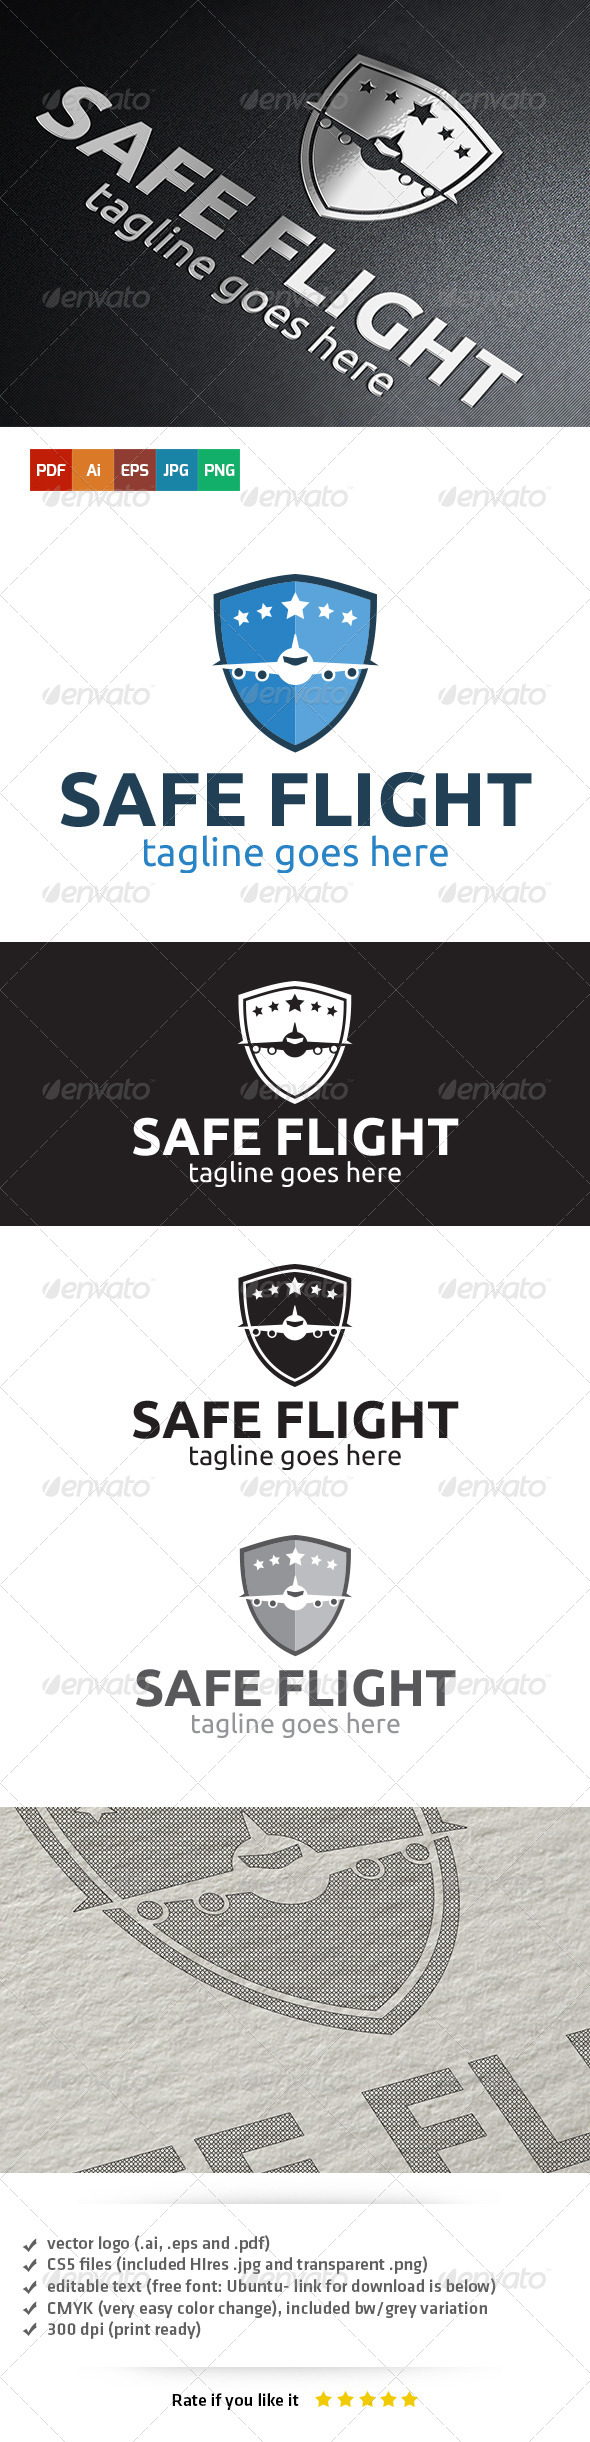 GraphicRiver Safe Flight Logo 5407986